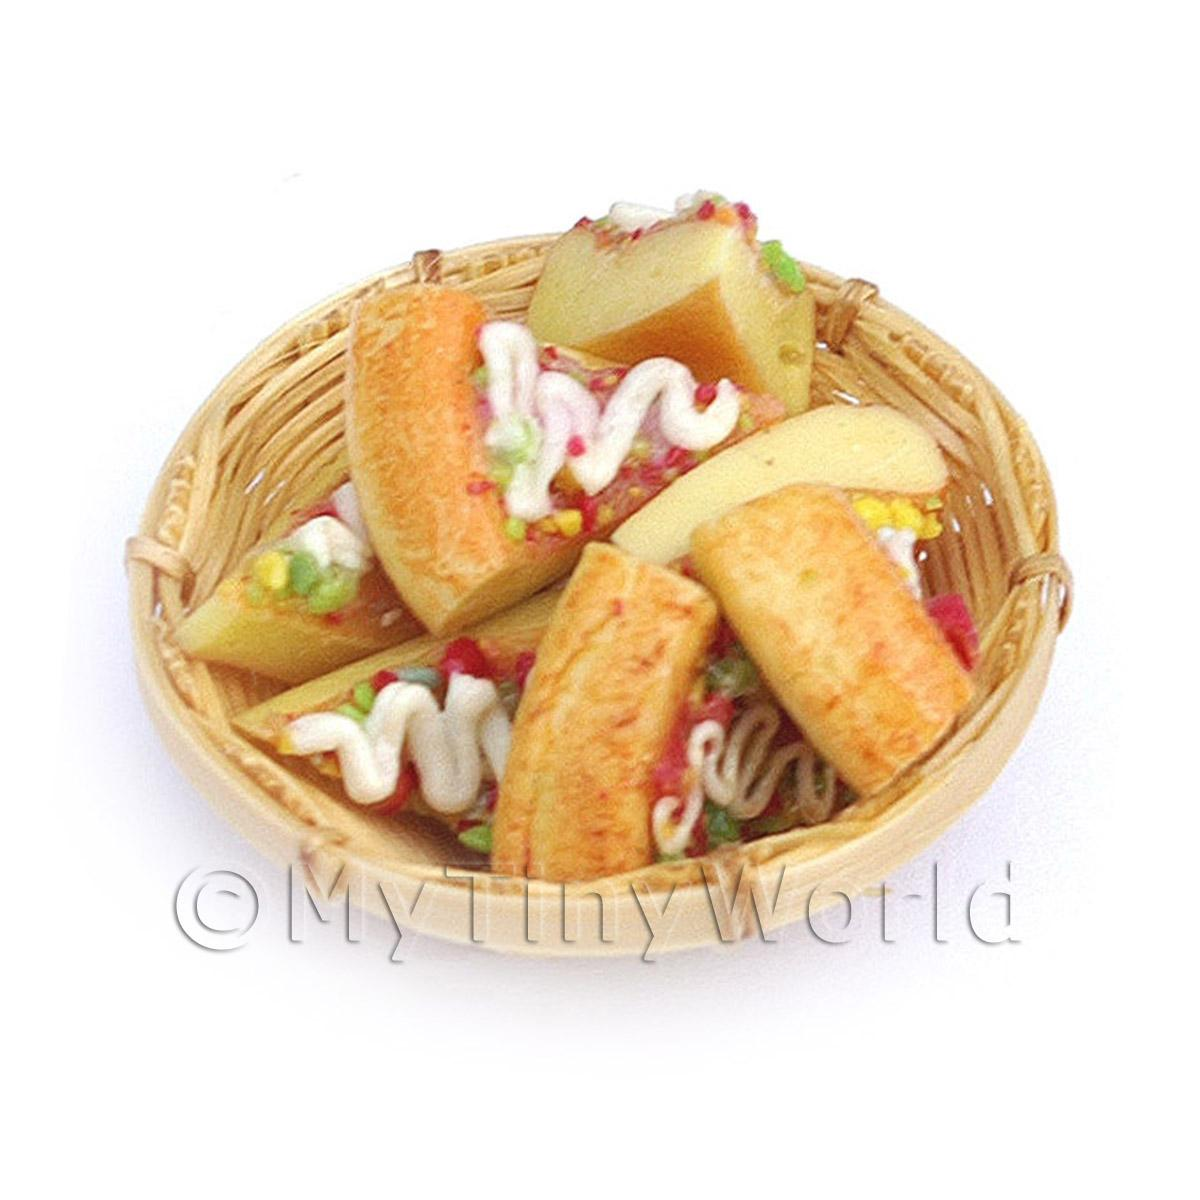 8 Dolls House Miniature Iced Cake Slices In A Small Basket